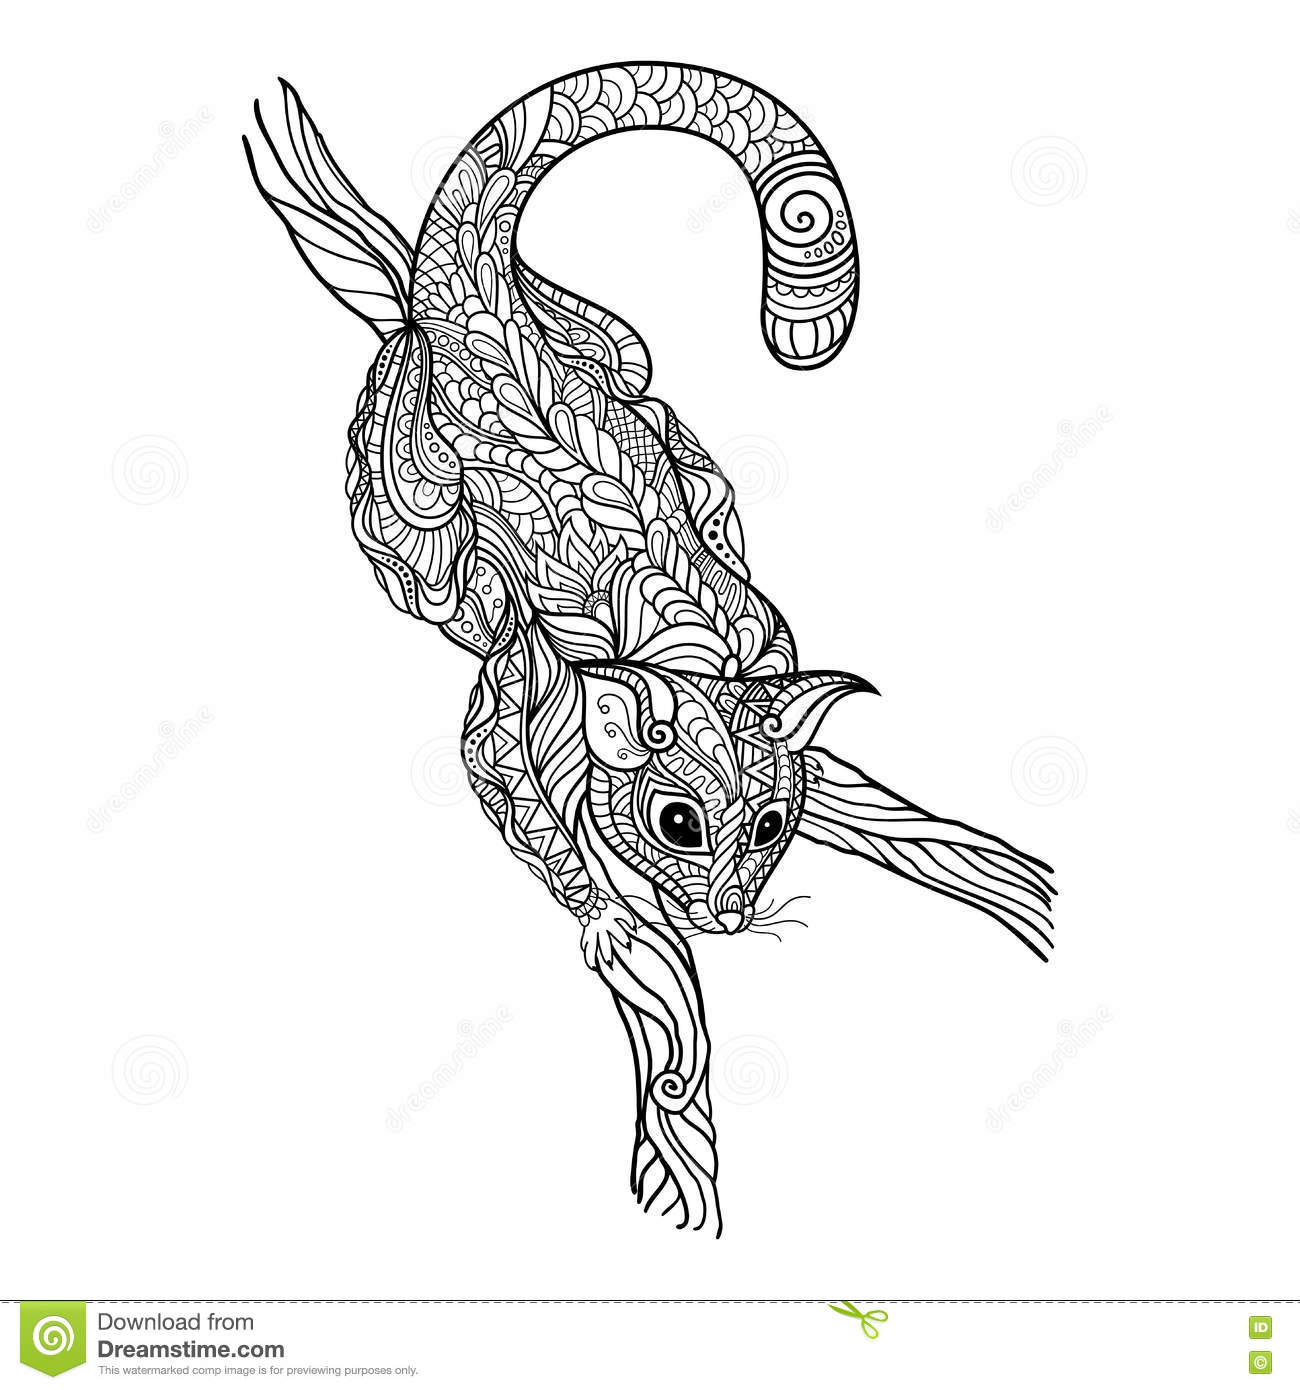 Zentangle Possum Totem For Adult Anti Stress Coloring Page